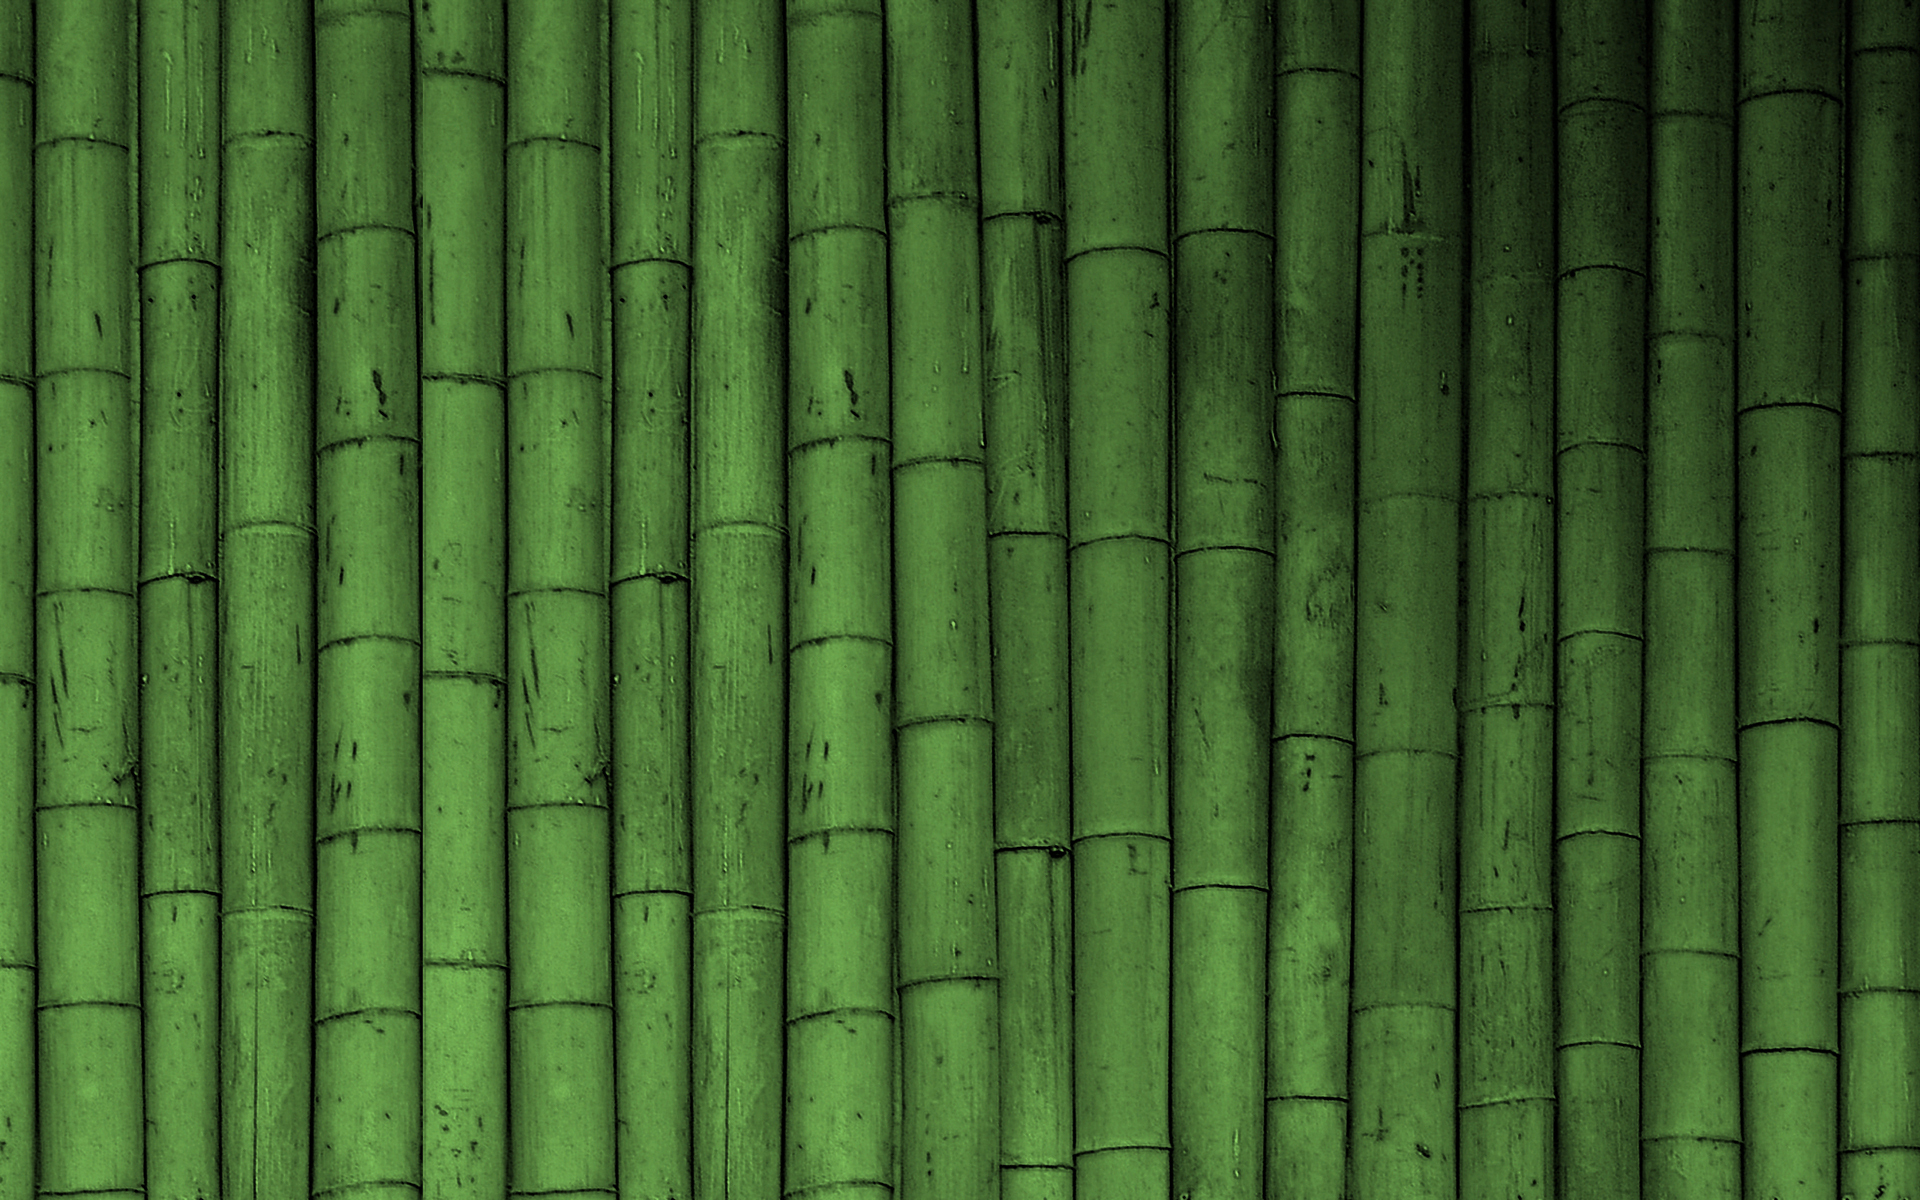 bamboo wallpaper green wallpaper 19784745 fanpop